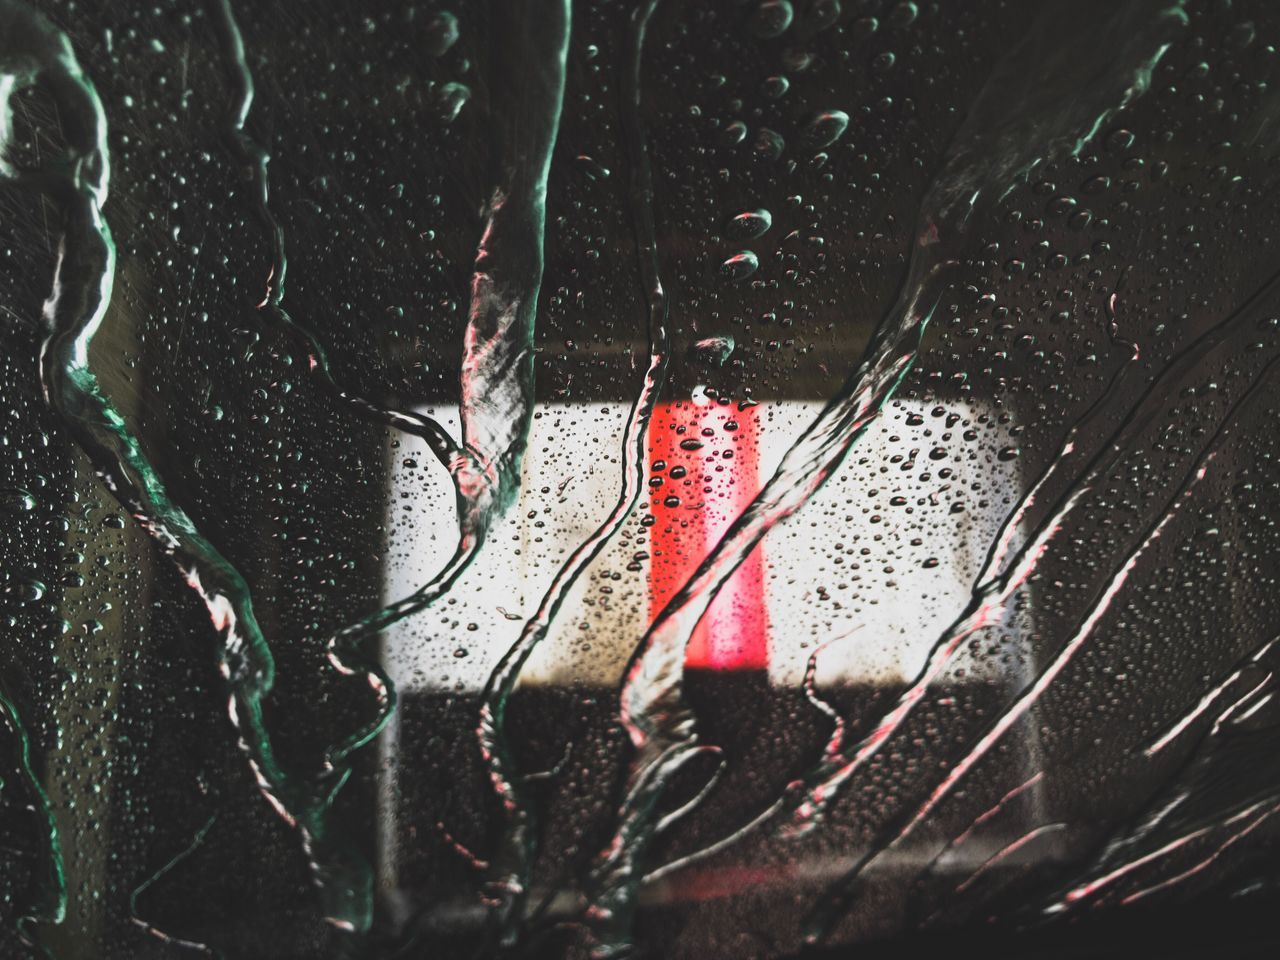 CarWashTime Wet Water Close-up No People Drenched Indoors  Day Carwash Iphone7plusphoto IPhone7Plus IPhoneography Iphoneonly Multi Colored